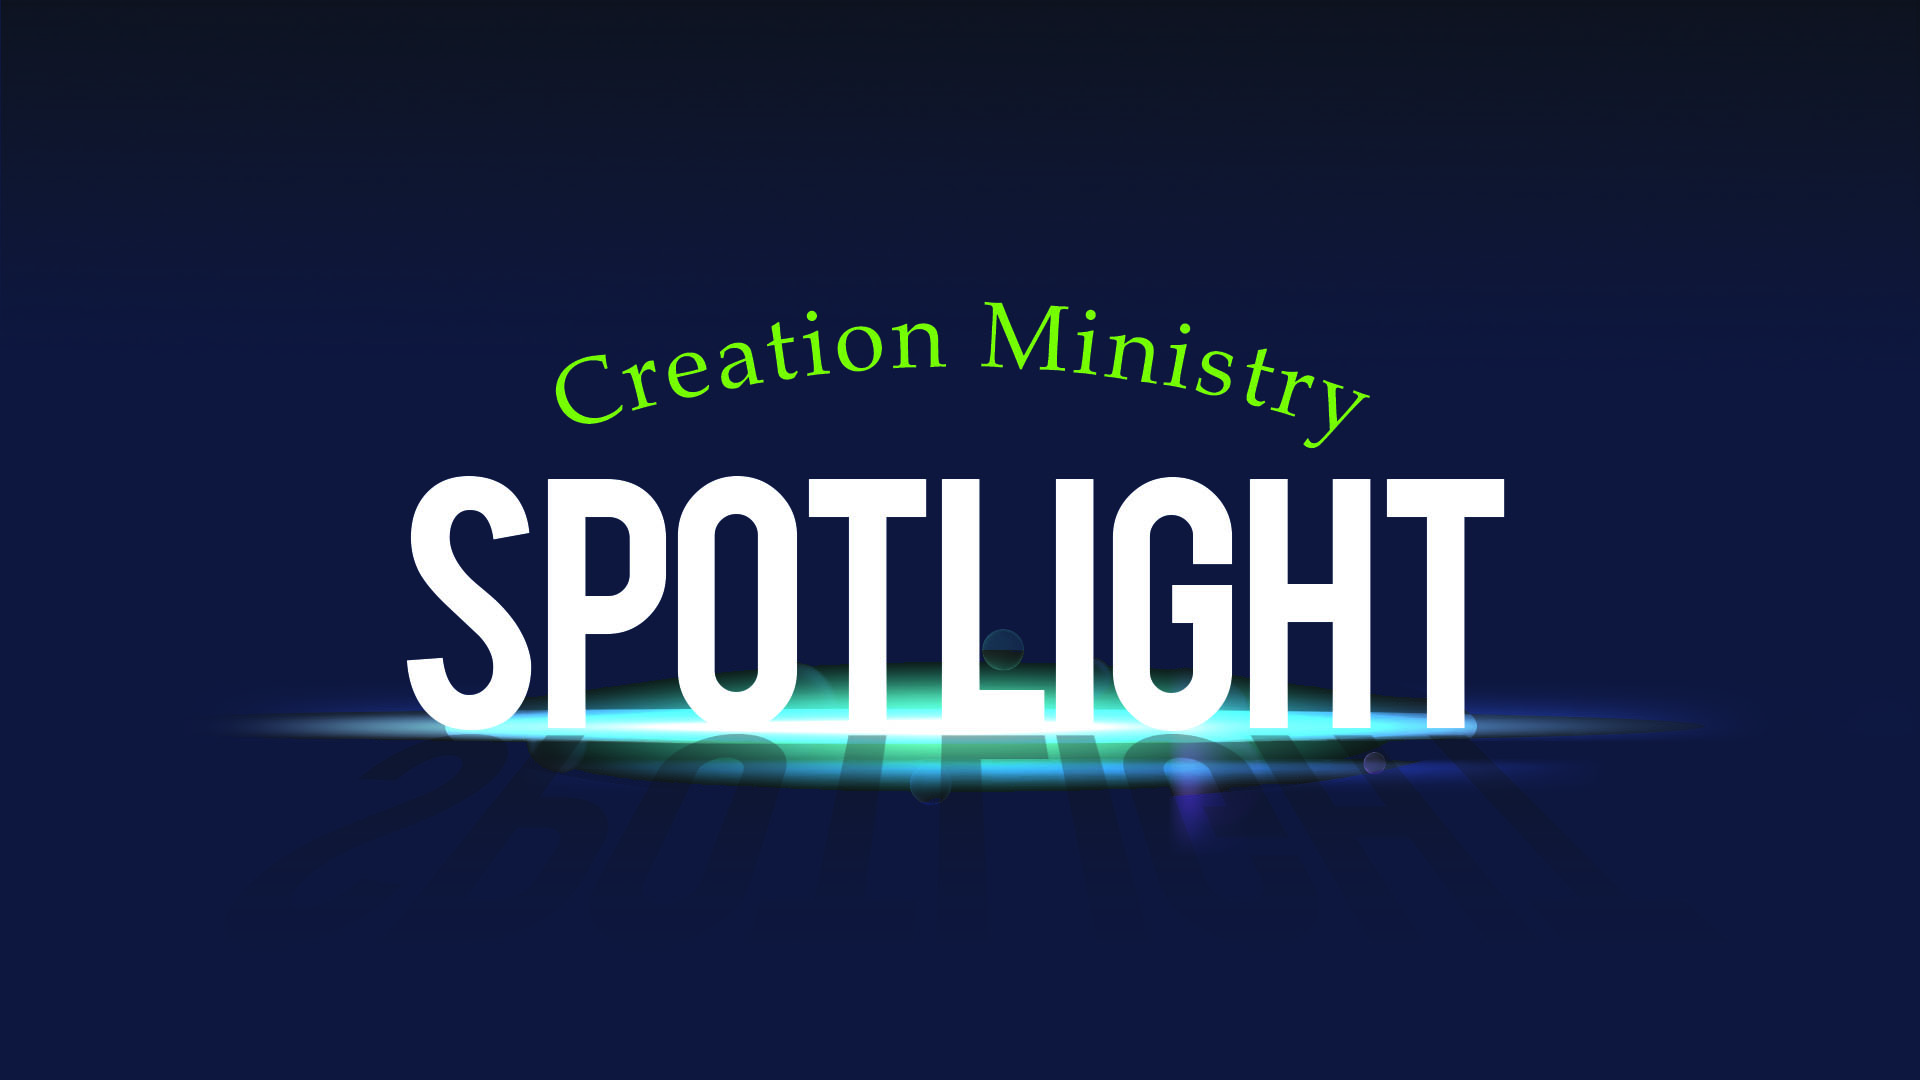 Creation Ministry Spotlight